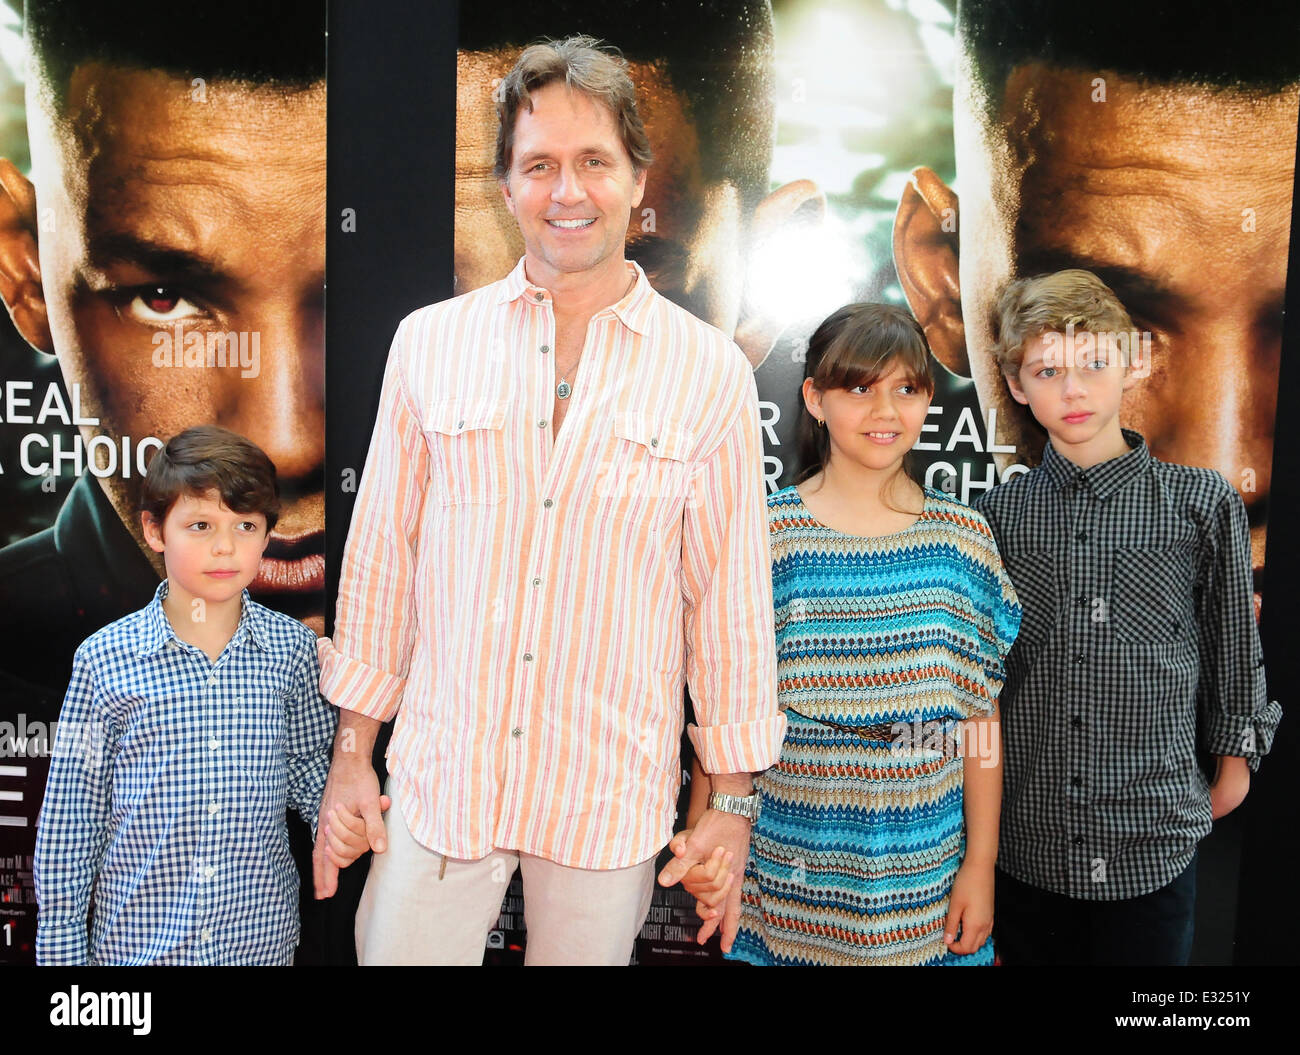 Will Smith And Jaden Smith Attend After Earth Day At The Miami Science Museum Featuring Guy Ecker Liam Sofia Kaelam Where Miami Florida United States When 16 May 2013 Stock Photo Alamy Get all the details on guy ecker, watch interviews and videos, and see what else bing knows. https www alamy com stock photo will smith and jaden smith attend after earth day at the miami science 70733319 html